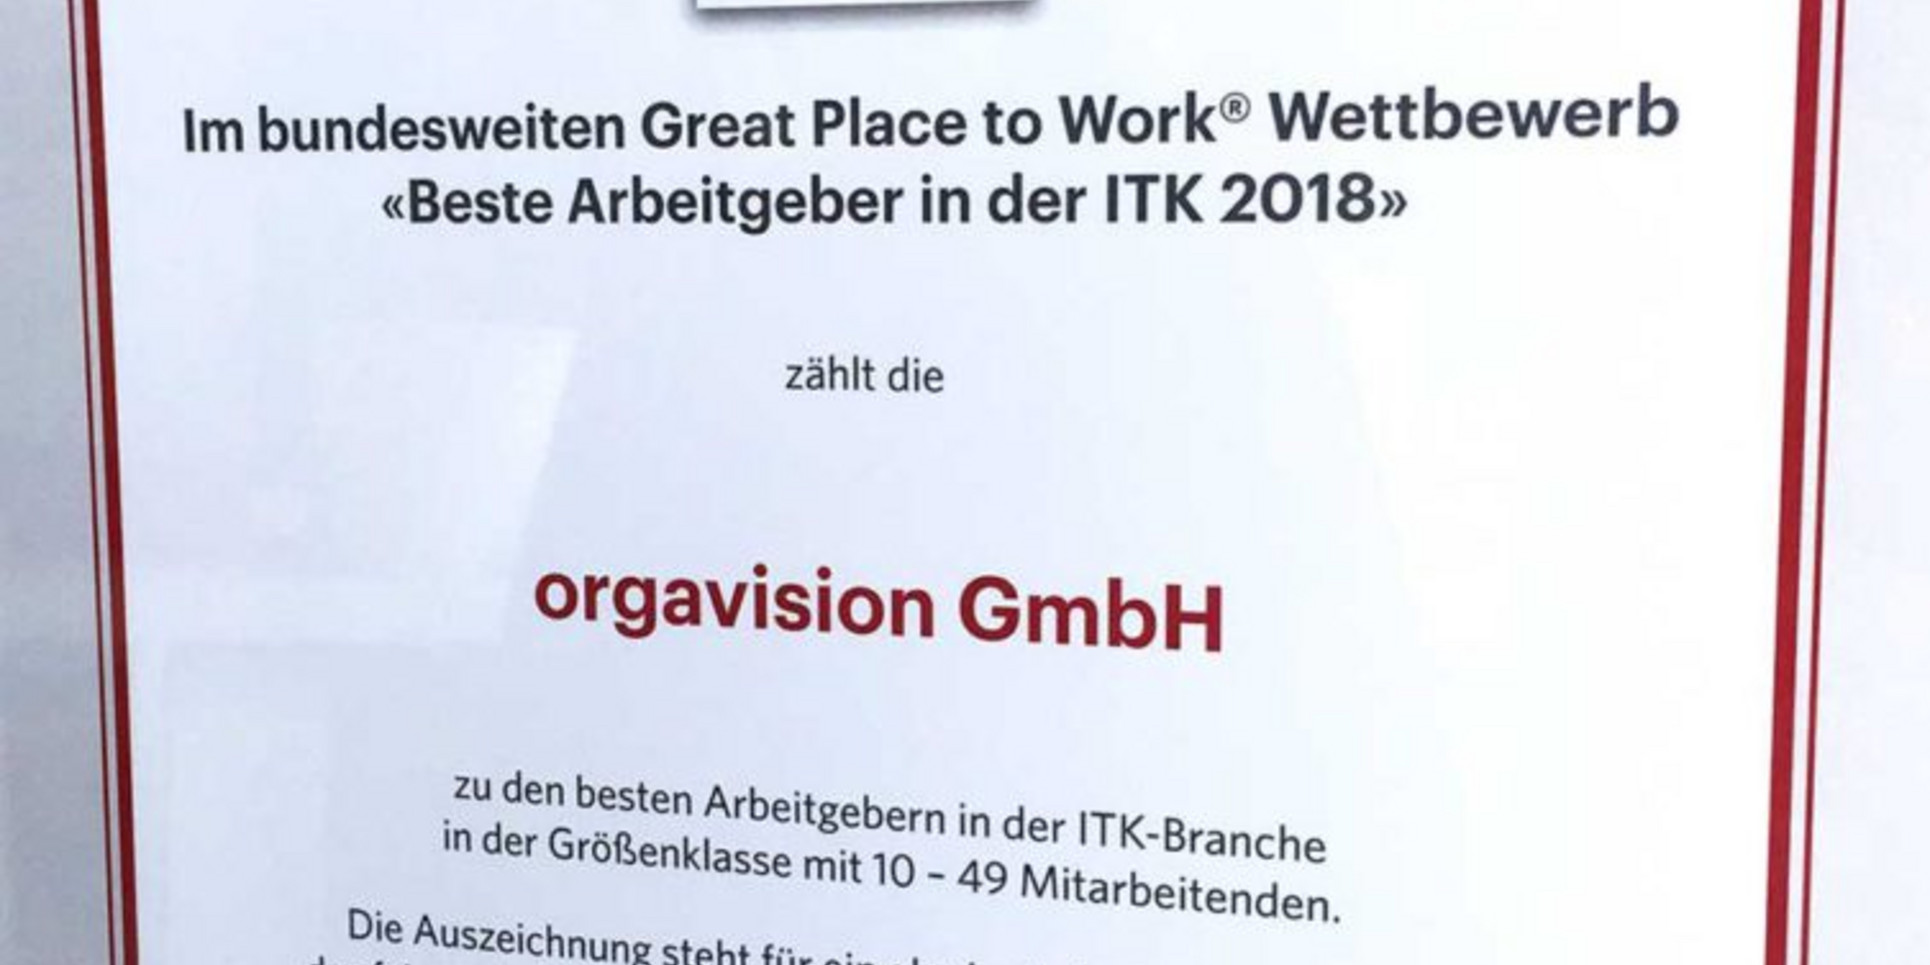 Das Zertifikat von Great Place to Work